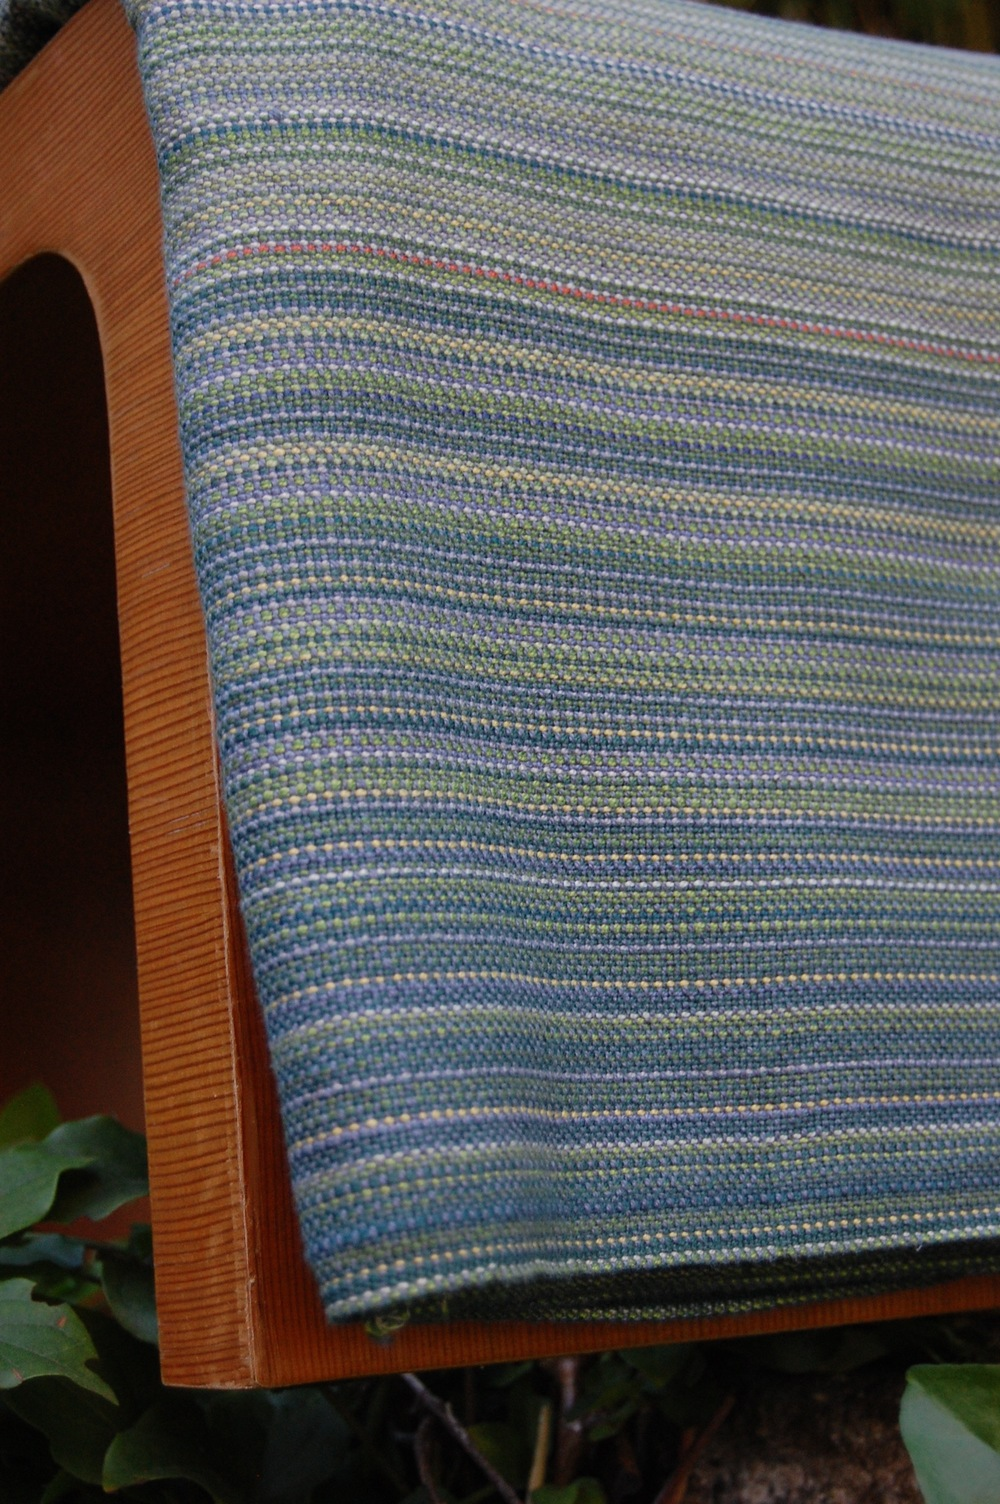 Cambria steel blue Egyptian cotton weft 4.2 meters $418.50 SECOND QUALITY - slight cosmetic flaw